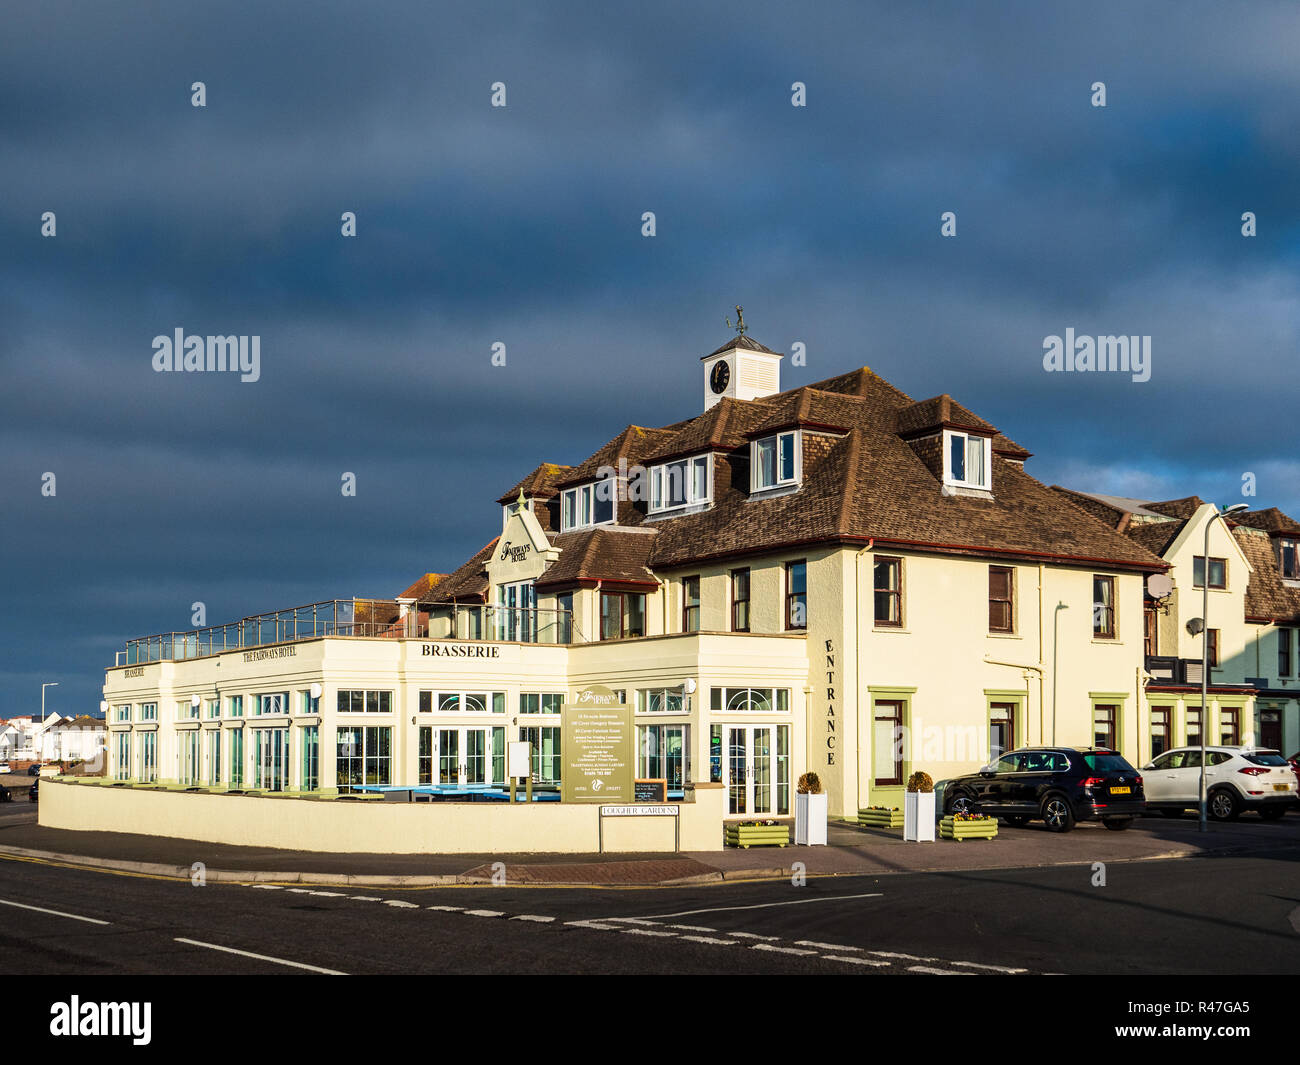 Fairways Hotel Porthcawl - the Porthcawl Fairways Hotel on the seafront in the South Wales seaside resort of Porthcawl - Stock Image